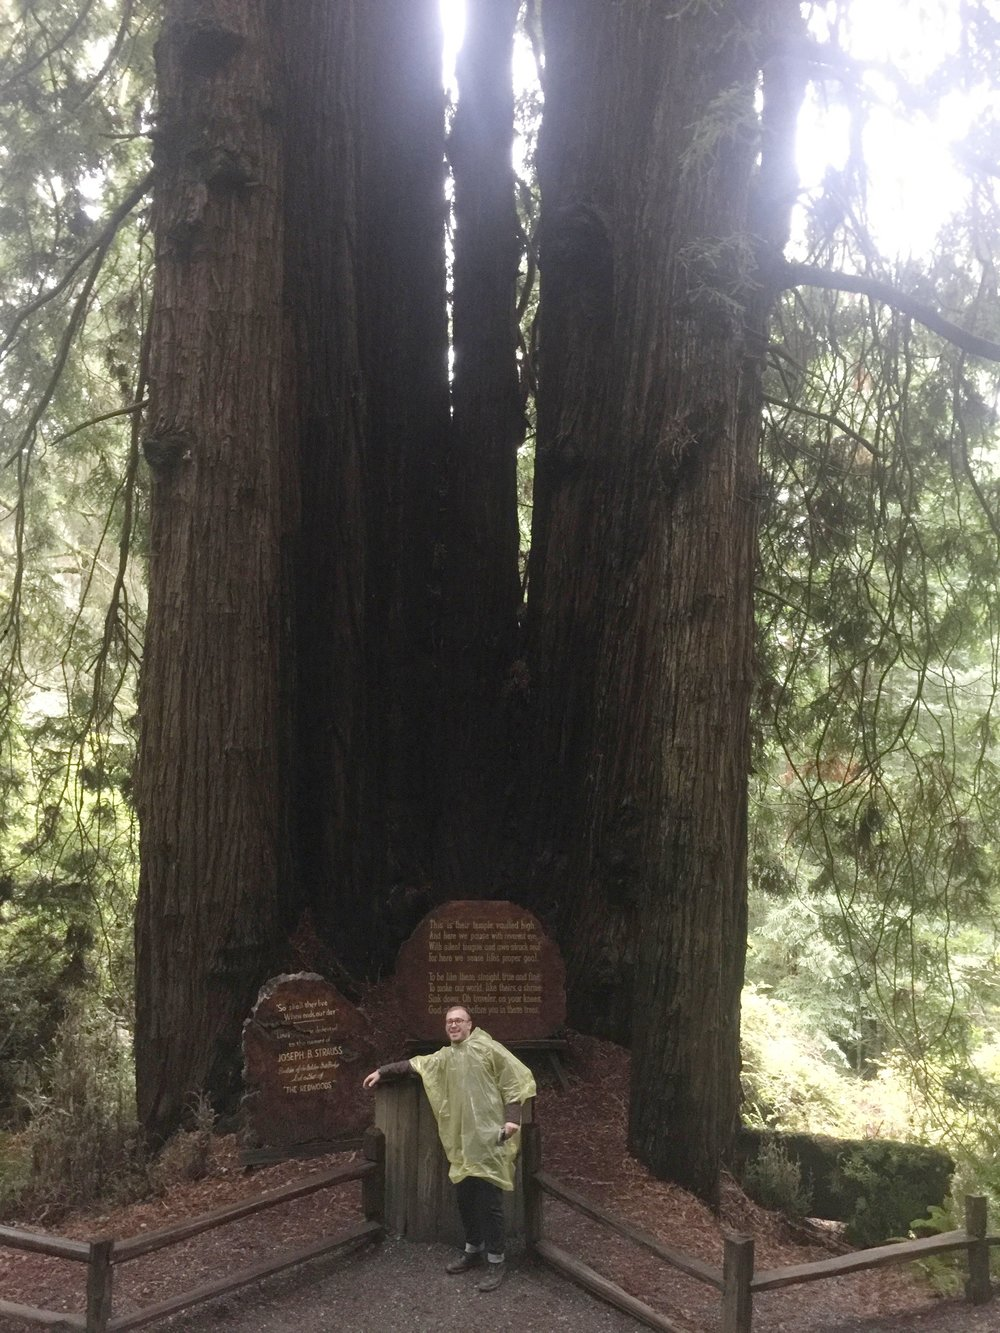 In honor of Joseph B Strauss who was a structural engineer and a poet. He had a passion for the Redwoods and wrote an ode to them.